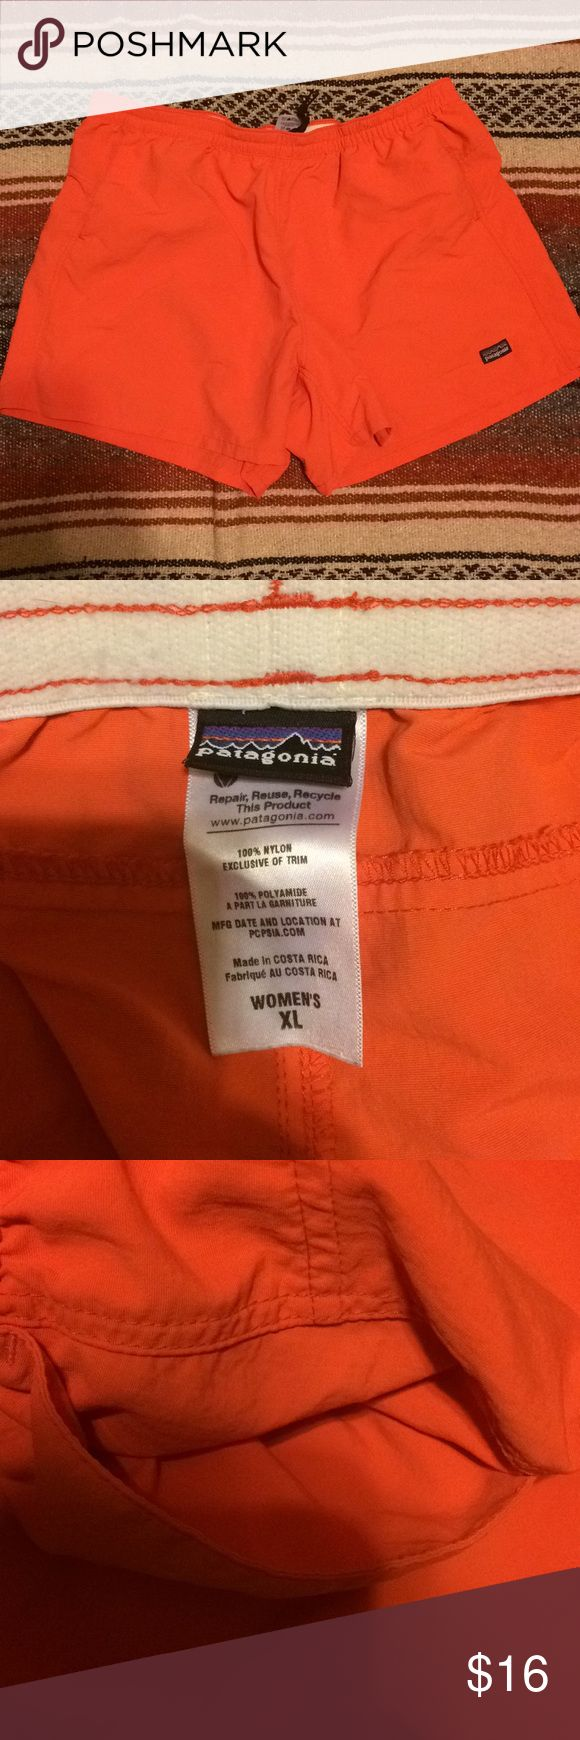 Coral Patagonia Nylon Shorts - XL Coral pink Patagonia nylon shorts with pocket. Size women's XL. Everything is in perfect condition minus a few small pen stains on the back inside of the right leg. They are tiny and hard to spot when not up close (pictured) but they are present and reflected in the price. Patagonia Shorts